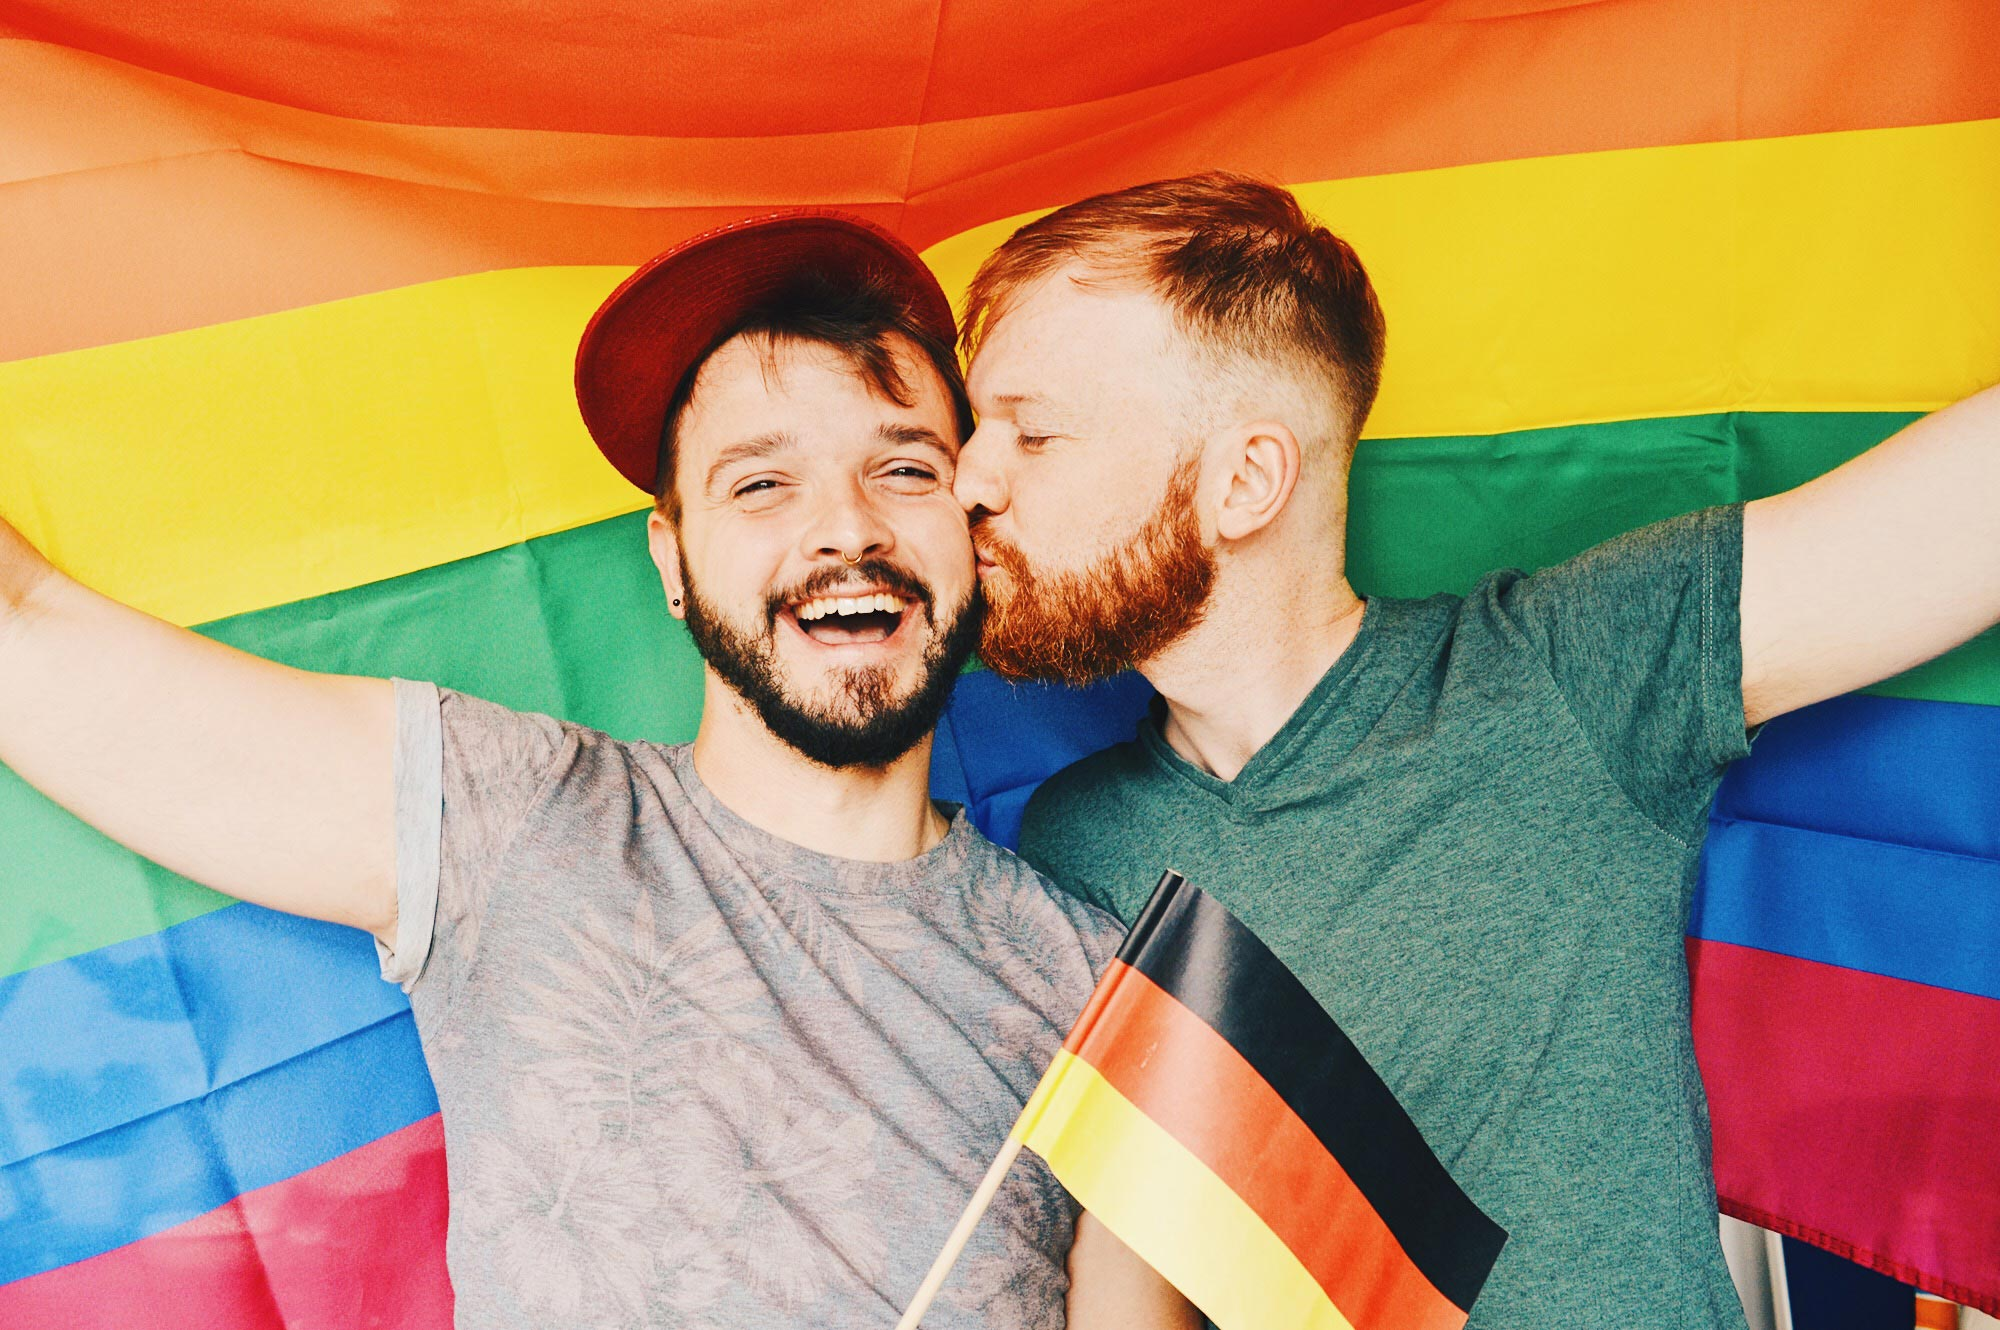 Gay Couple celebrates equality for Germany Same-Sex Marriage © CoupleofMen.com